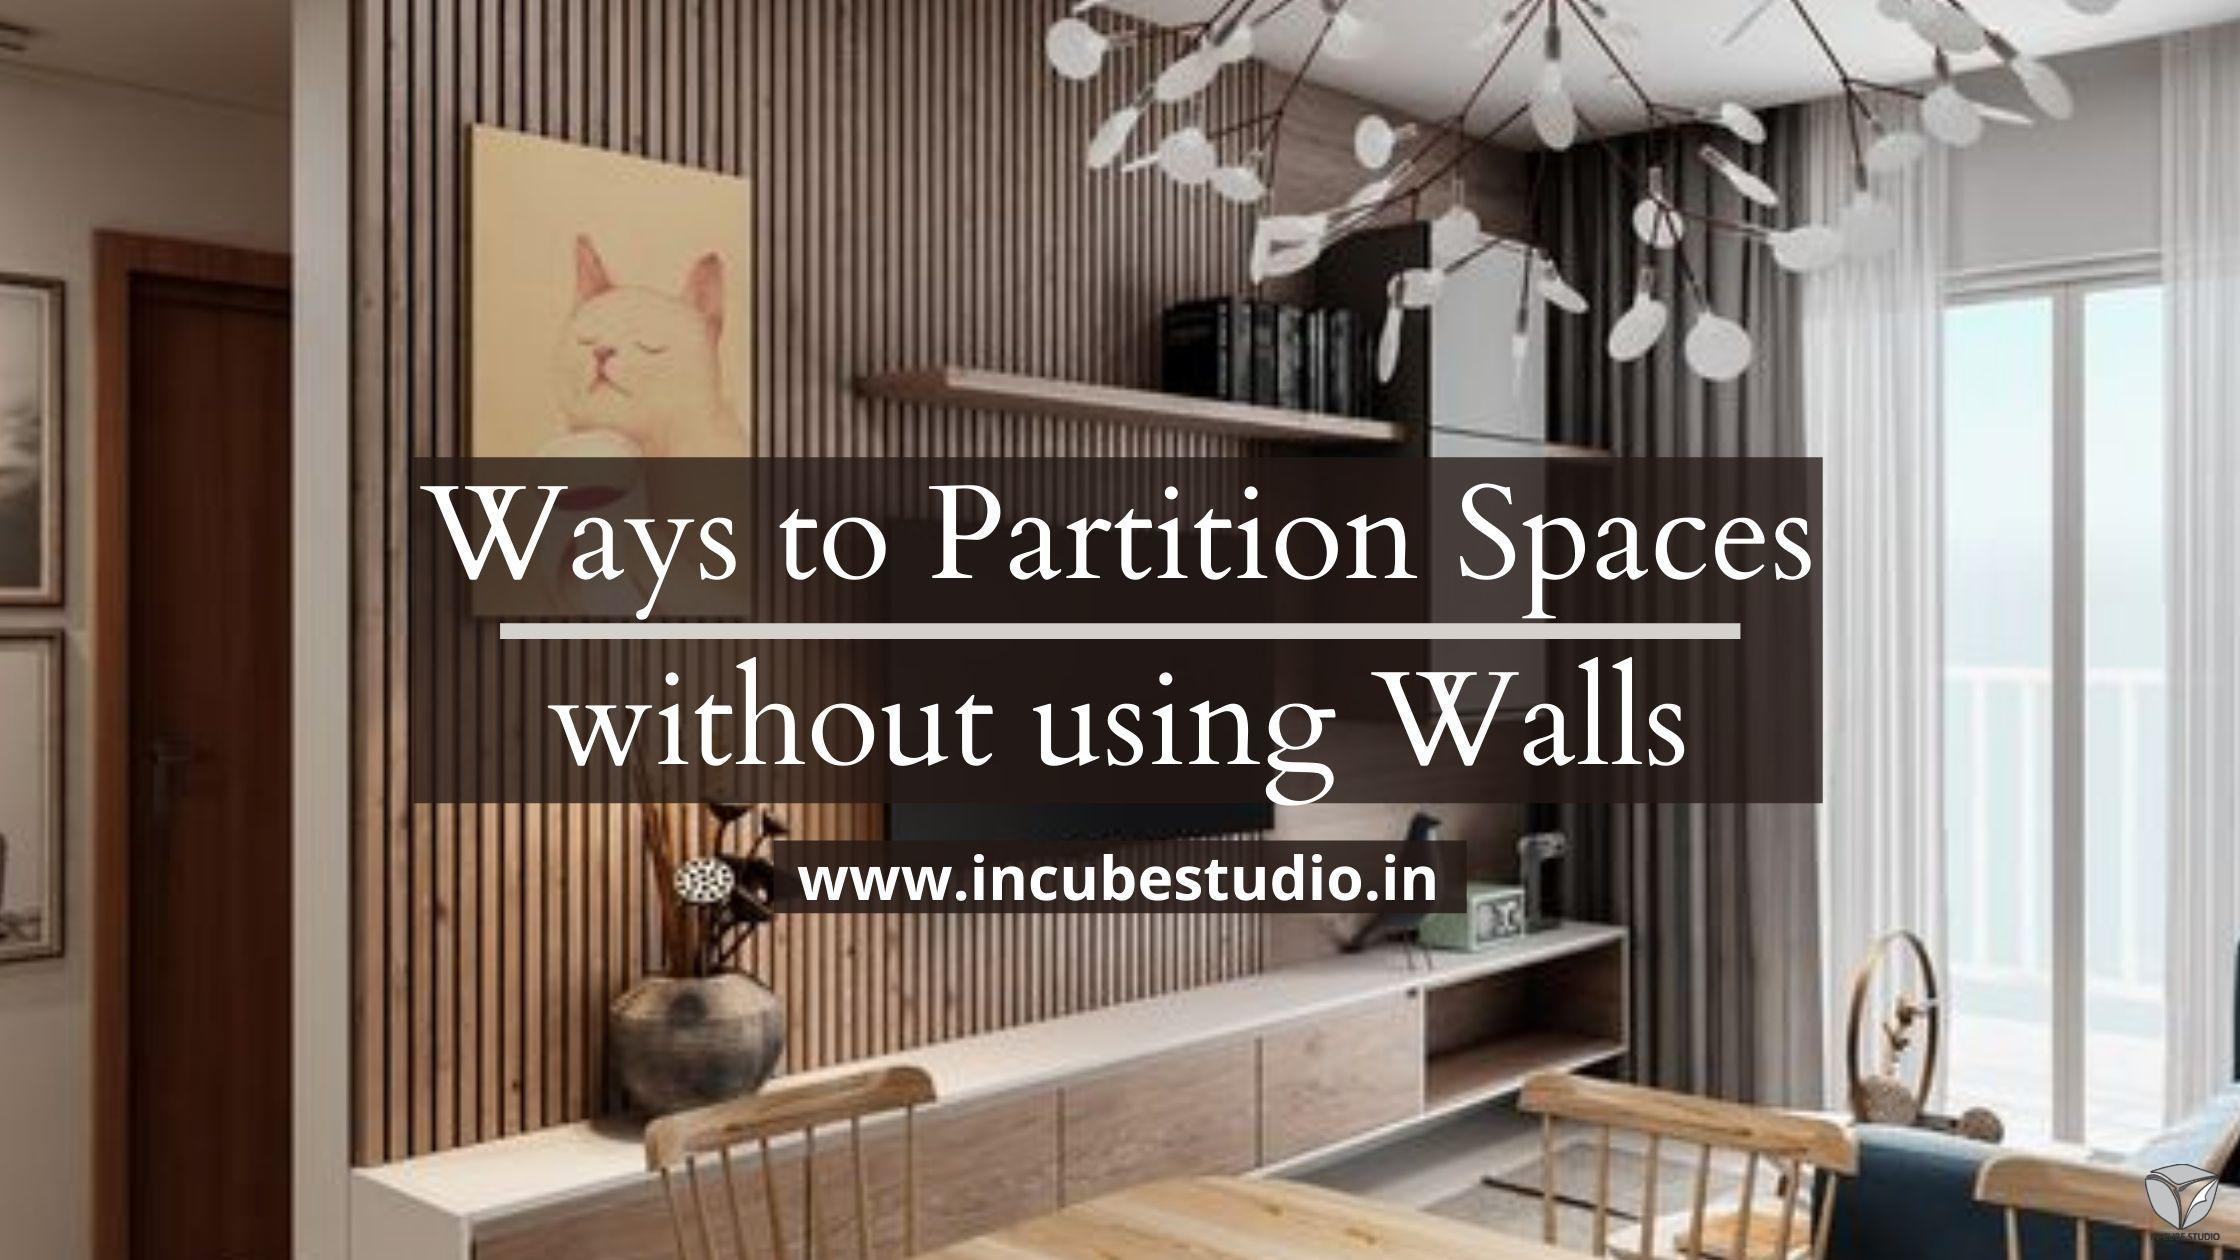 Ways to Partition Spaces without using Walls